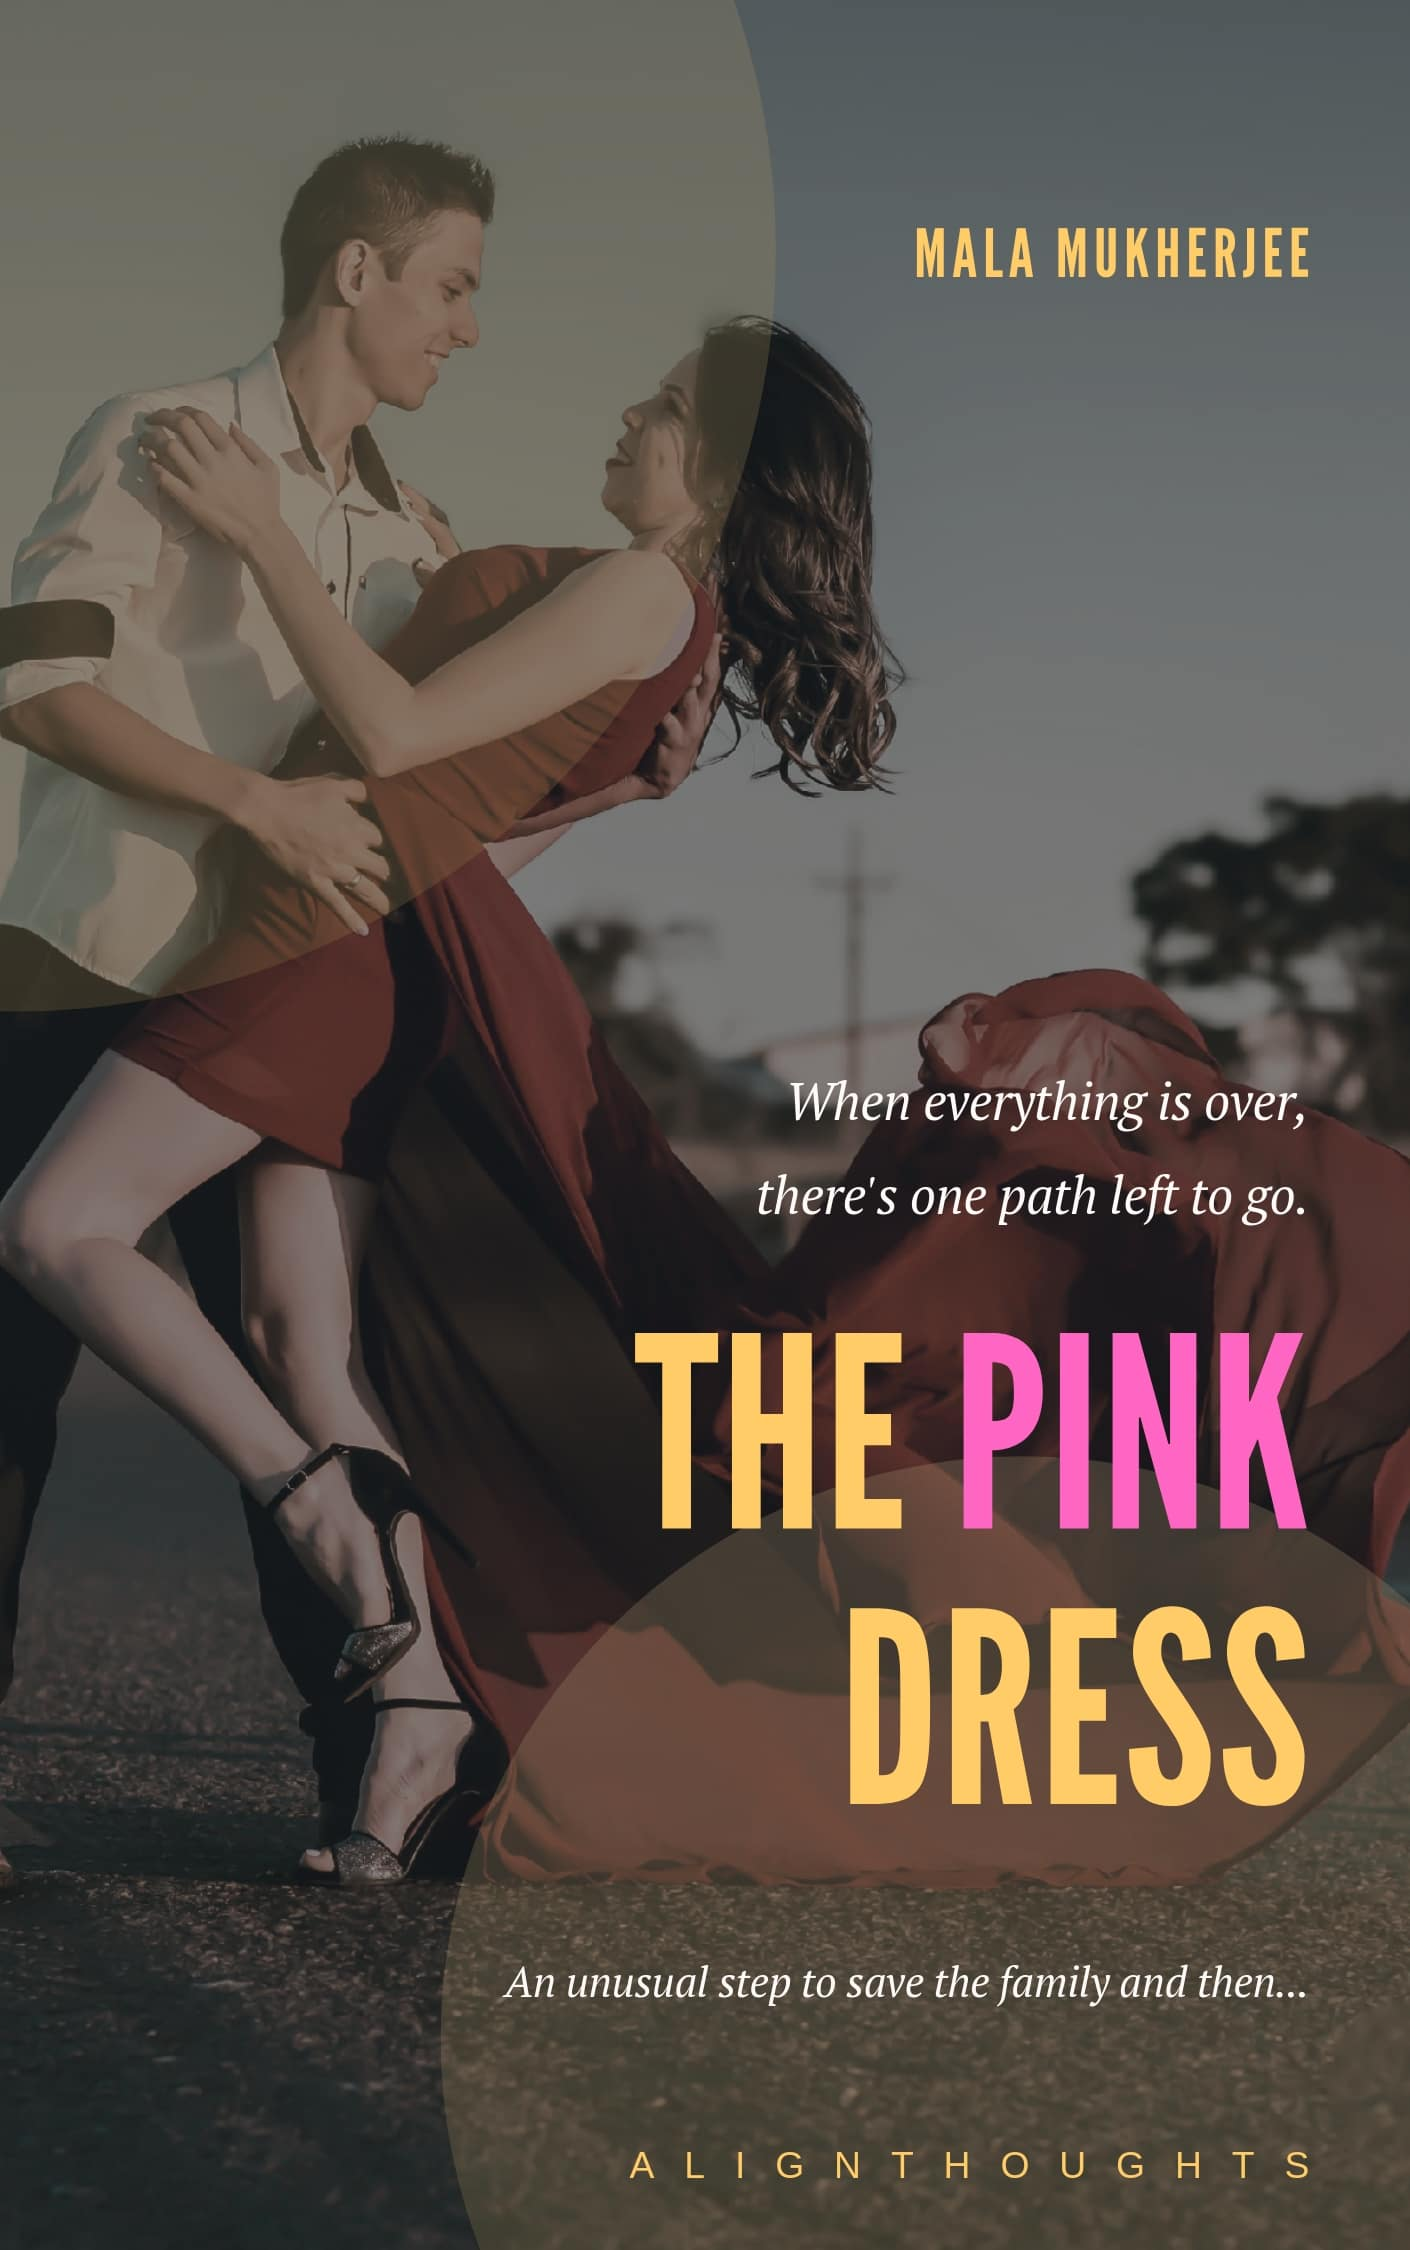 THE PINK DRESS - alignthoughts